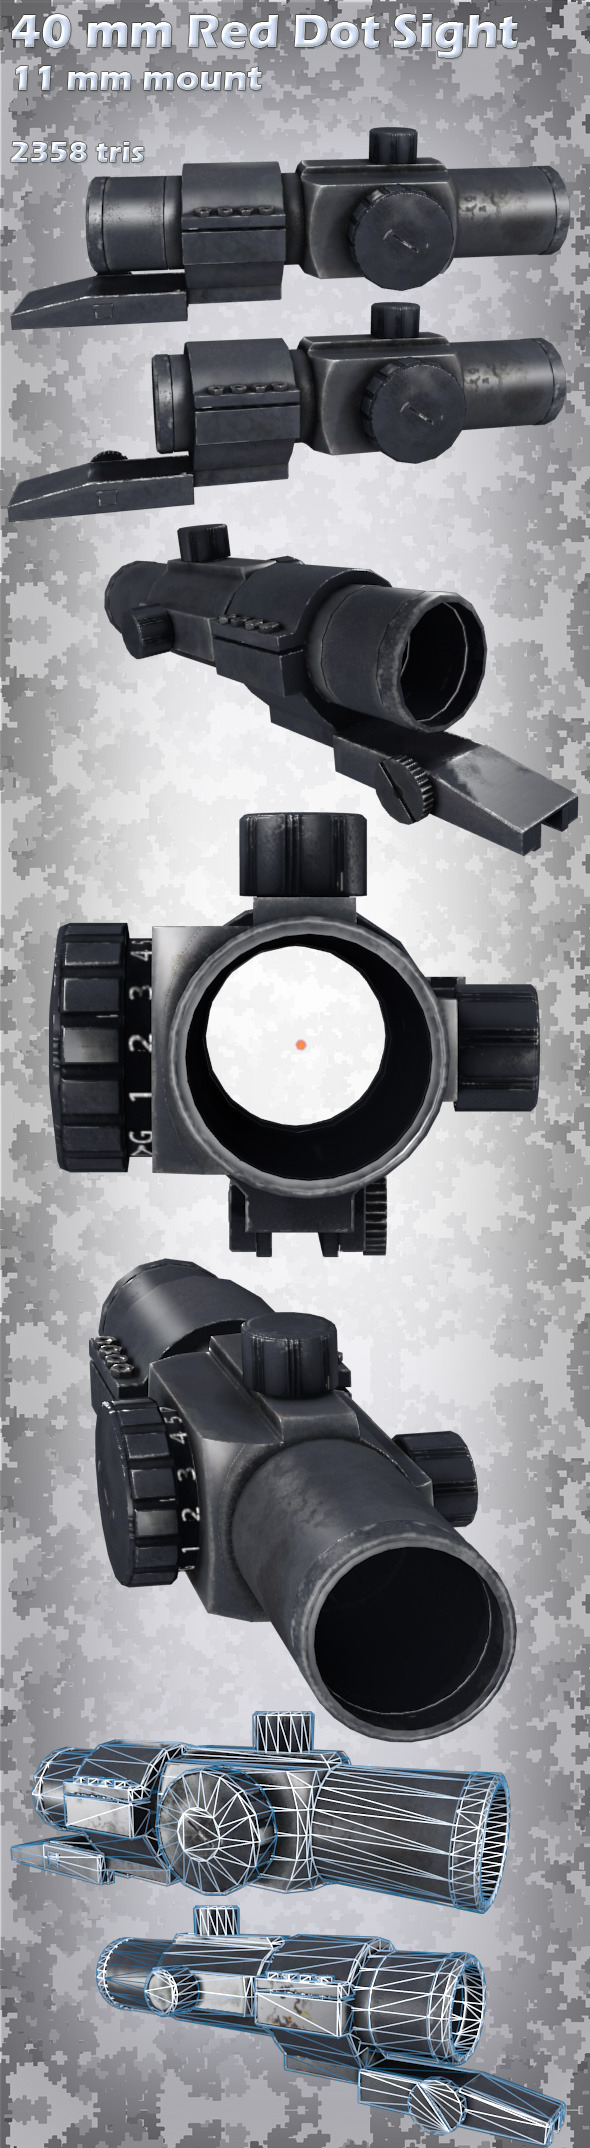 40mm Red Dot Sight with 11mm mount - 3DOcean Item for Sale